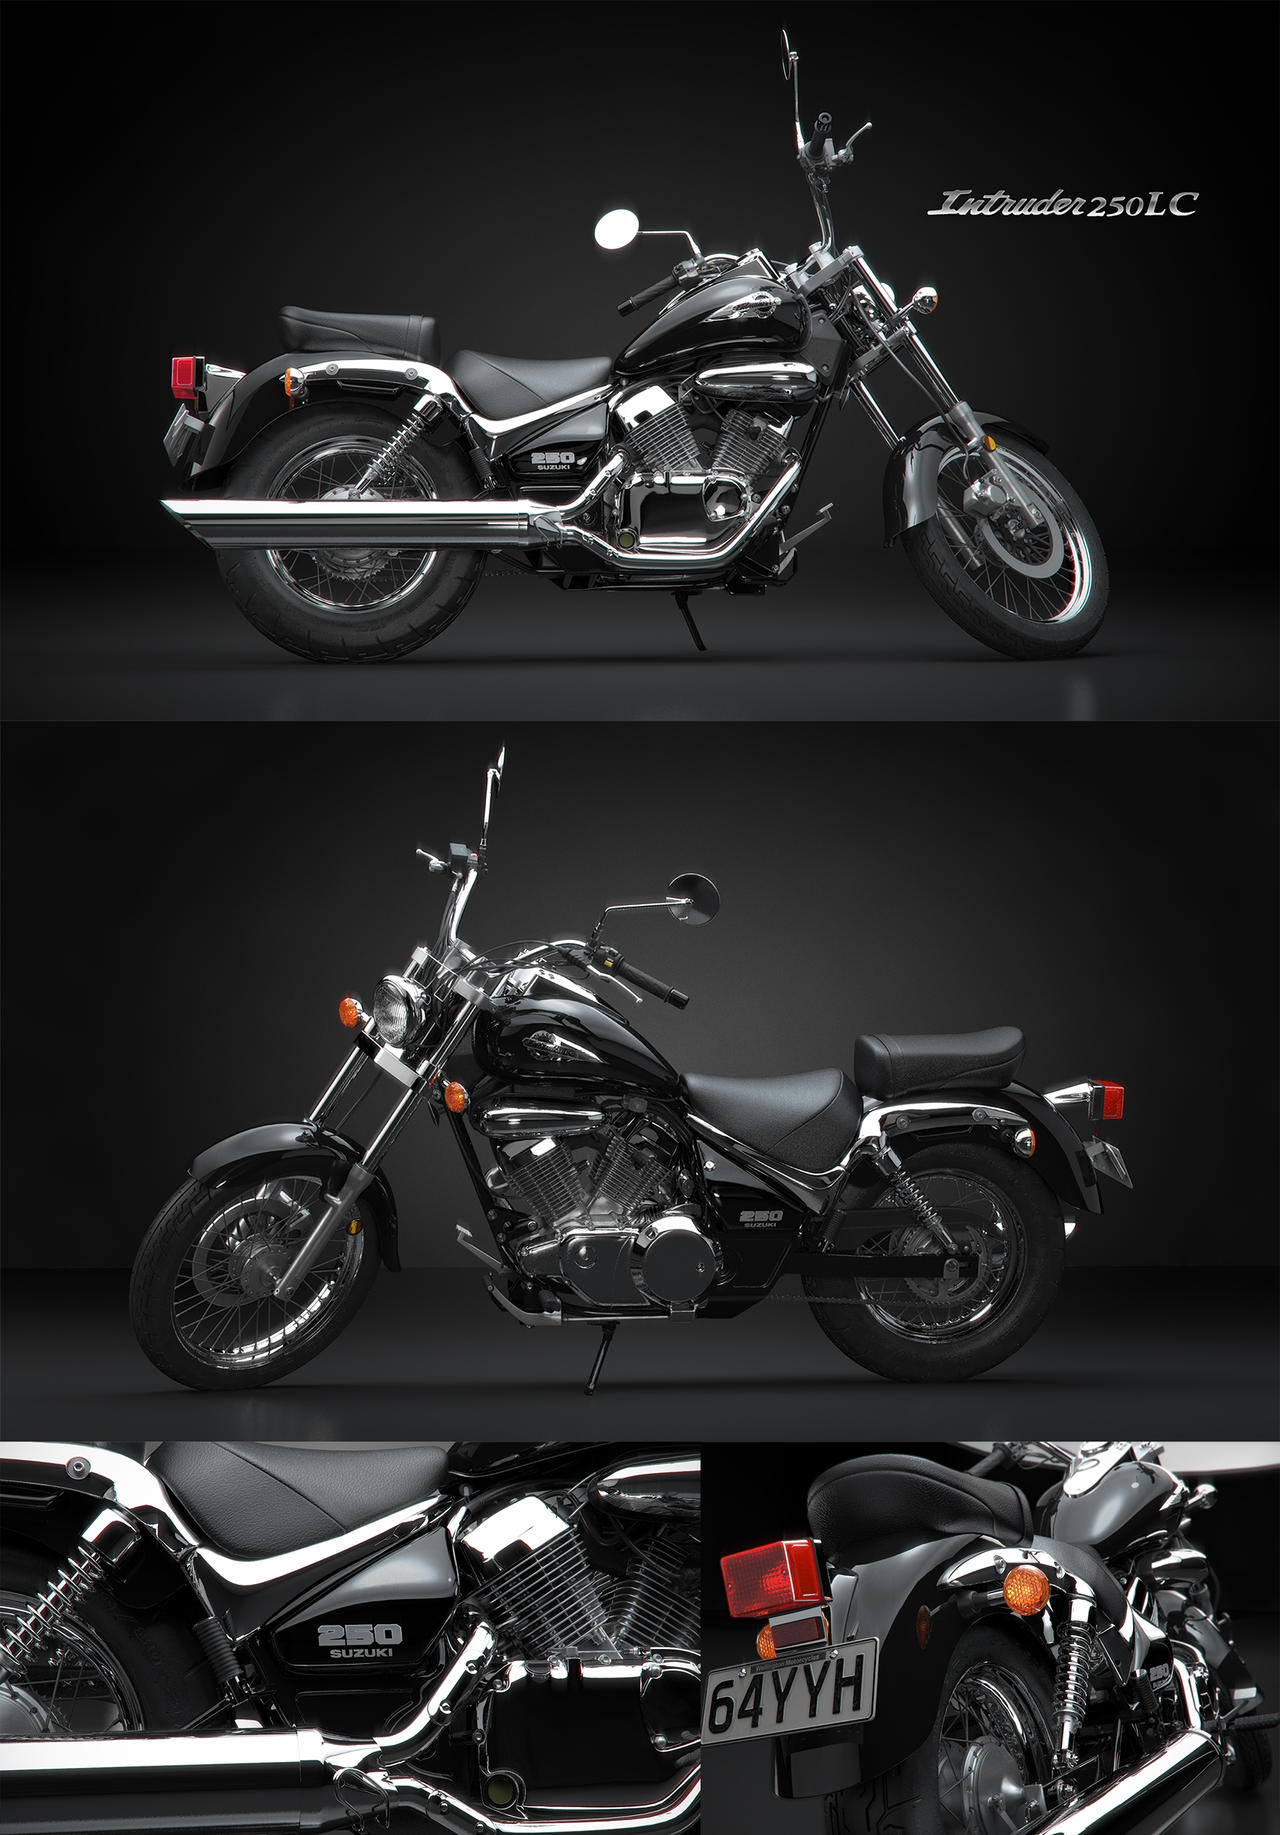 Suzuki Intruder 250LC by Tritonic